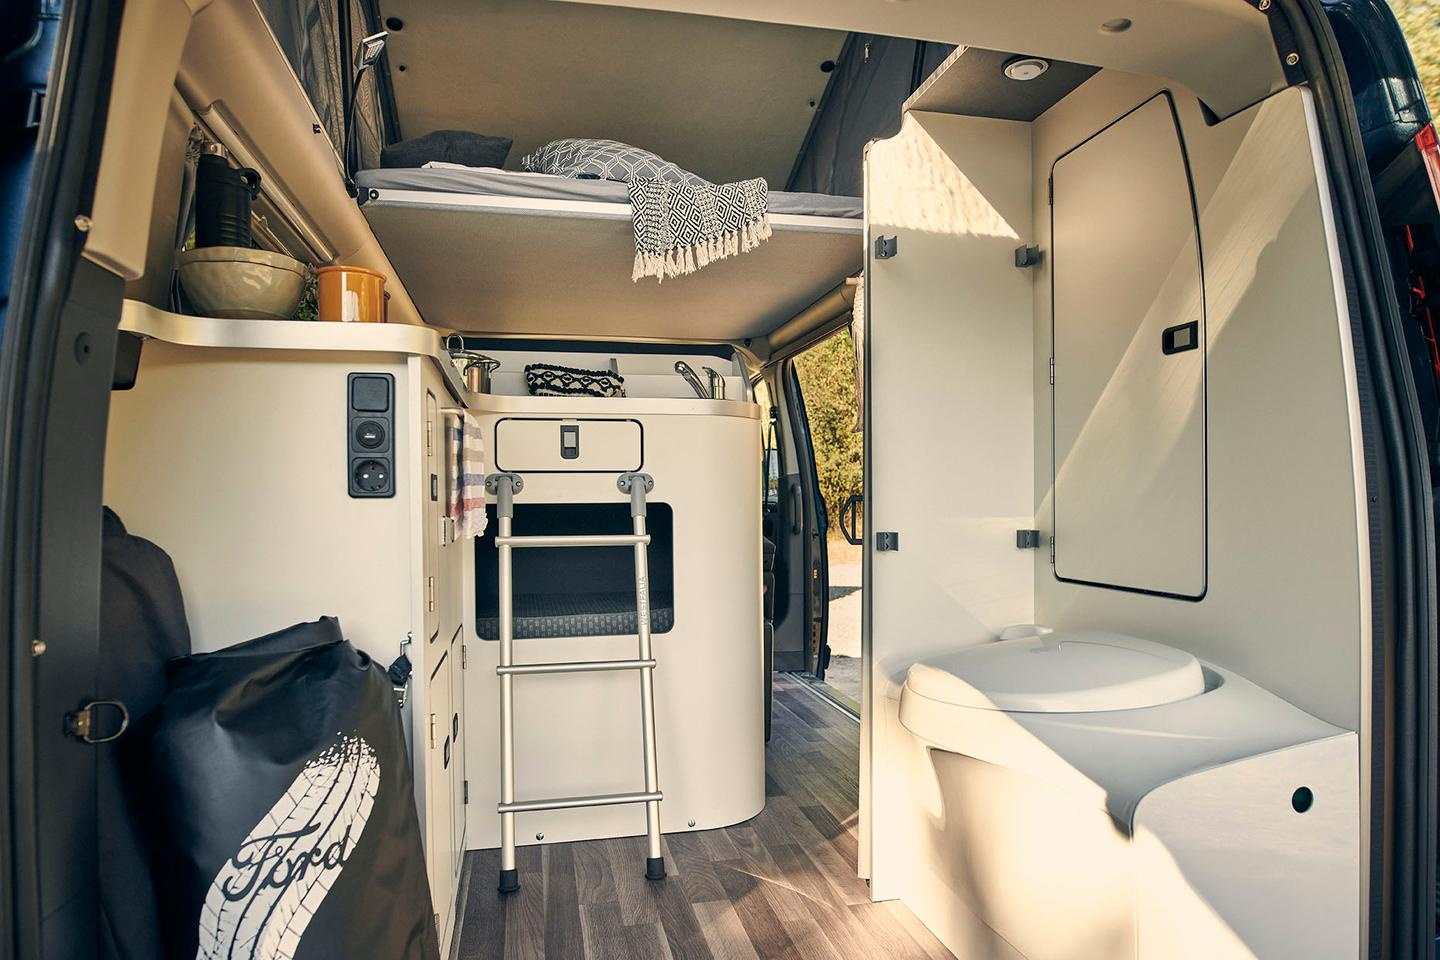 The Nugget Plus brings a rear bathroom, central L-shaped kitchen, front dining lounge and available pop-up roof